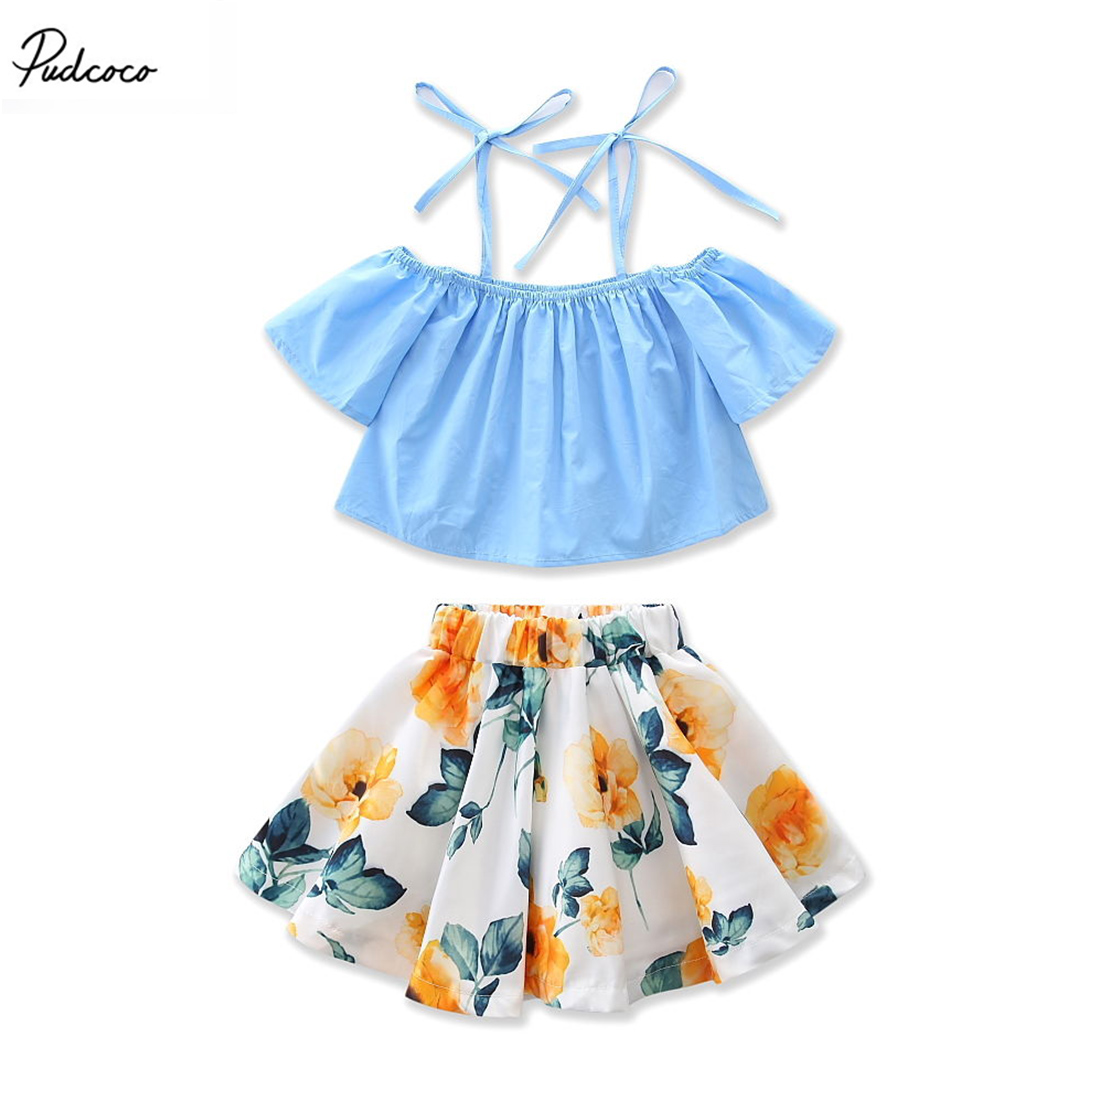 Fashion Retro Style Dance Silhouette Sleepwear Short Sleeve Cotton Rompers for Baby Boys and Girls